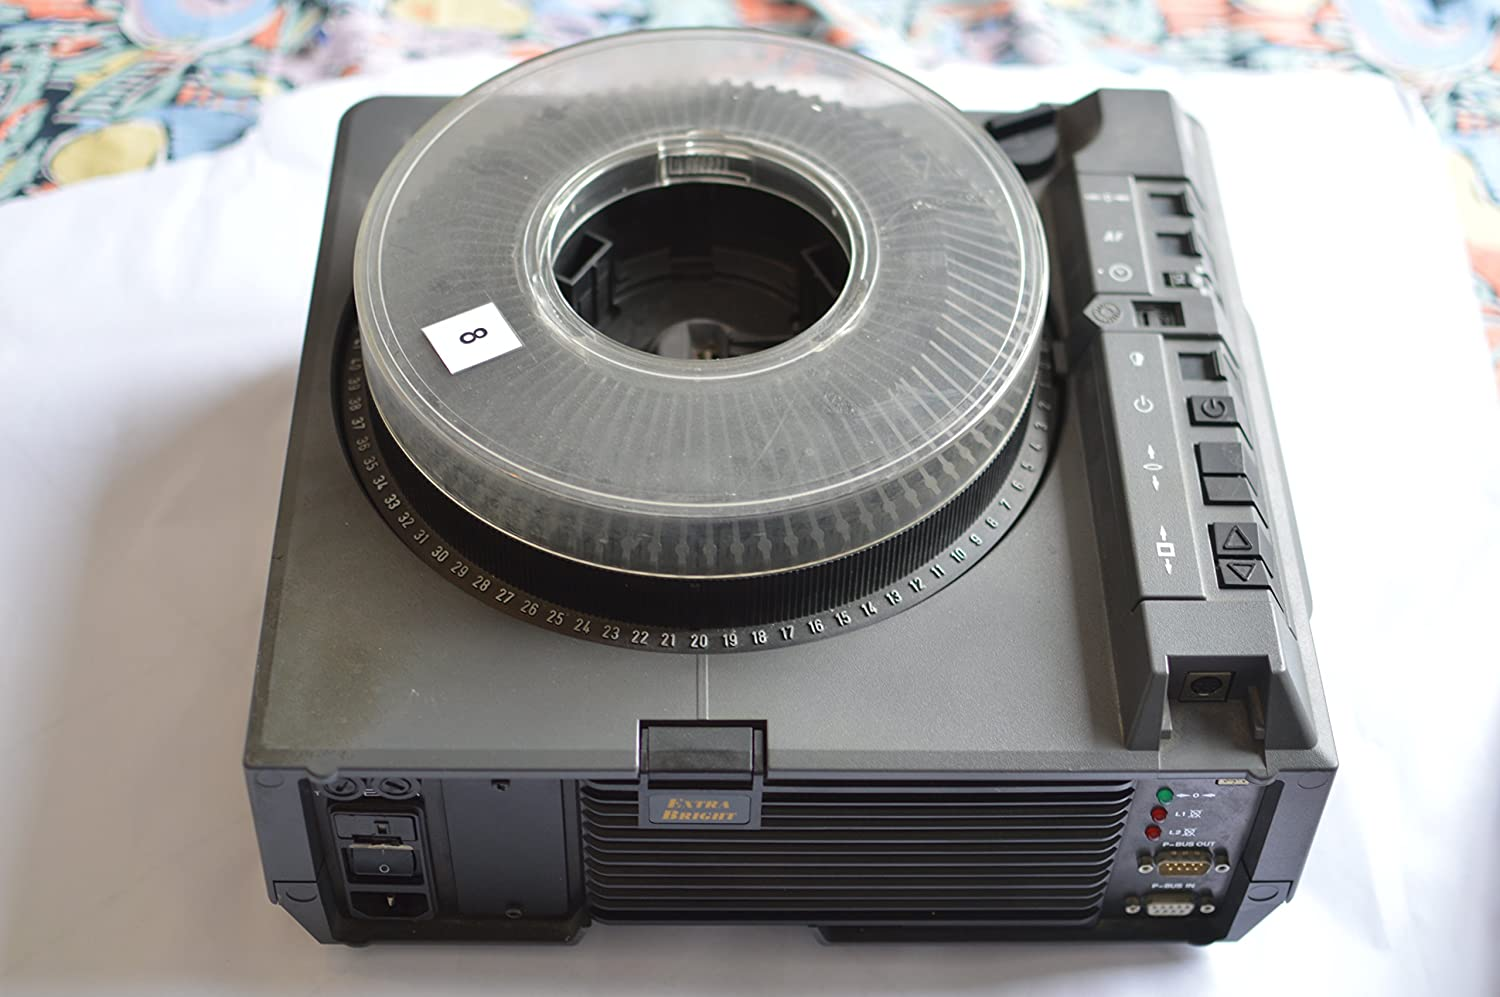 Slide projector tray for BOOTS projector 36 slides per tray  x 3 TRAYS box